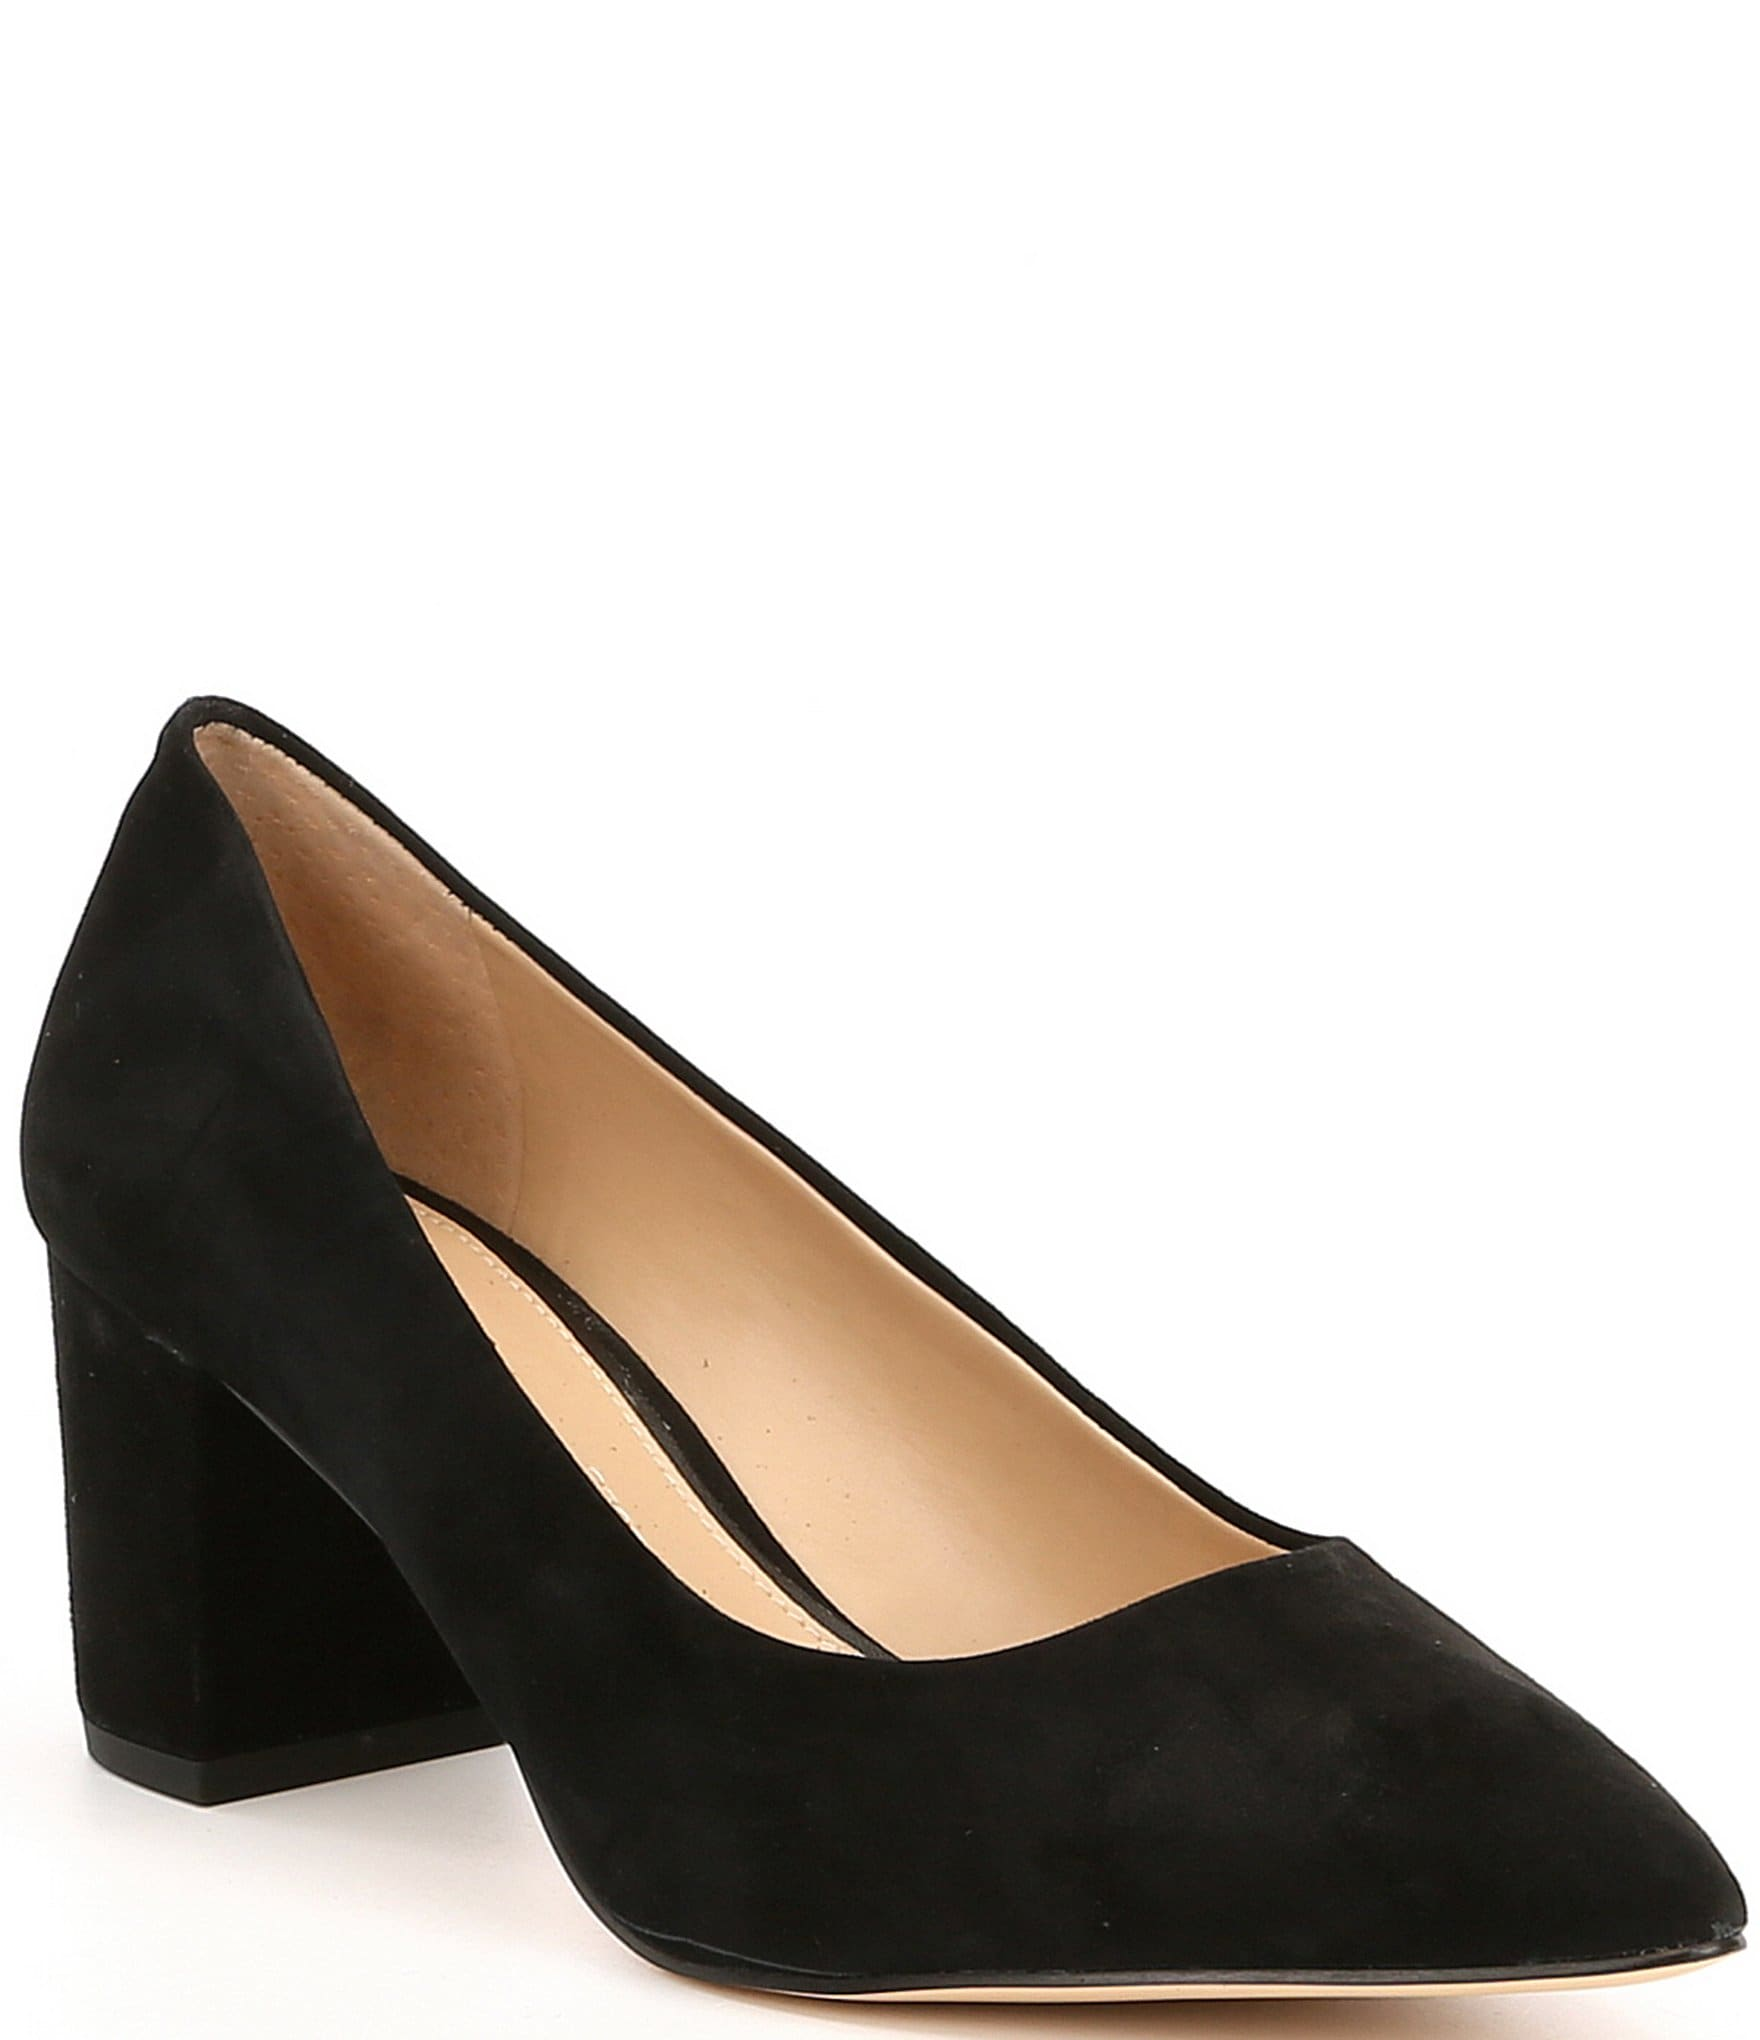 Dillards Gianni Bini Black Shoes